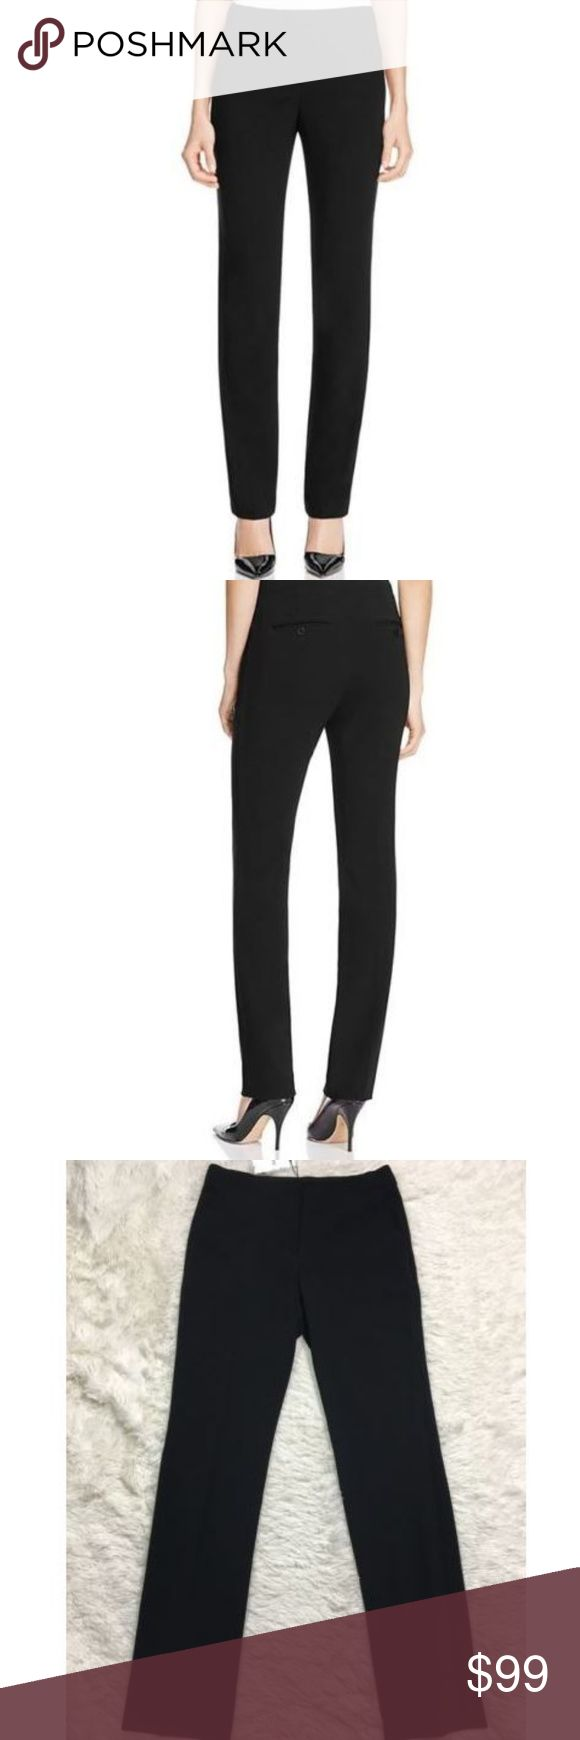 Theory Pants 4 Black Litrella Admiral Crepe New Theory Pants size 4 Black Litrella Admiral Crepe Slacks Trousers Womens NEW NWT Inseam is 34 inches, unstretched.   Waist is 31 inches unstretched. Theory Pants Trousers